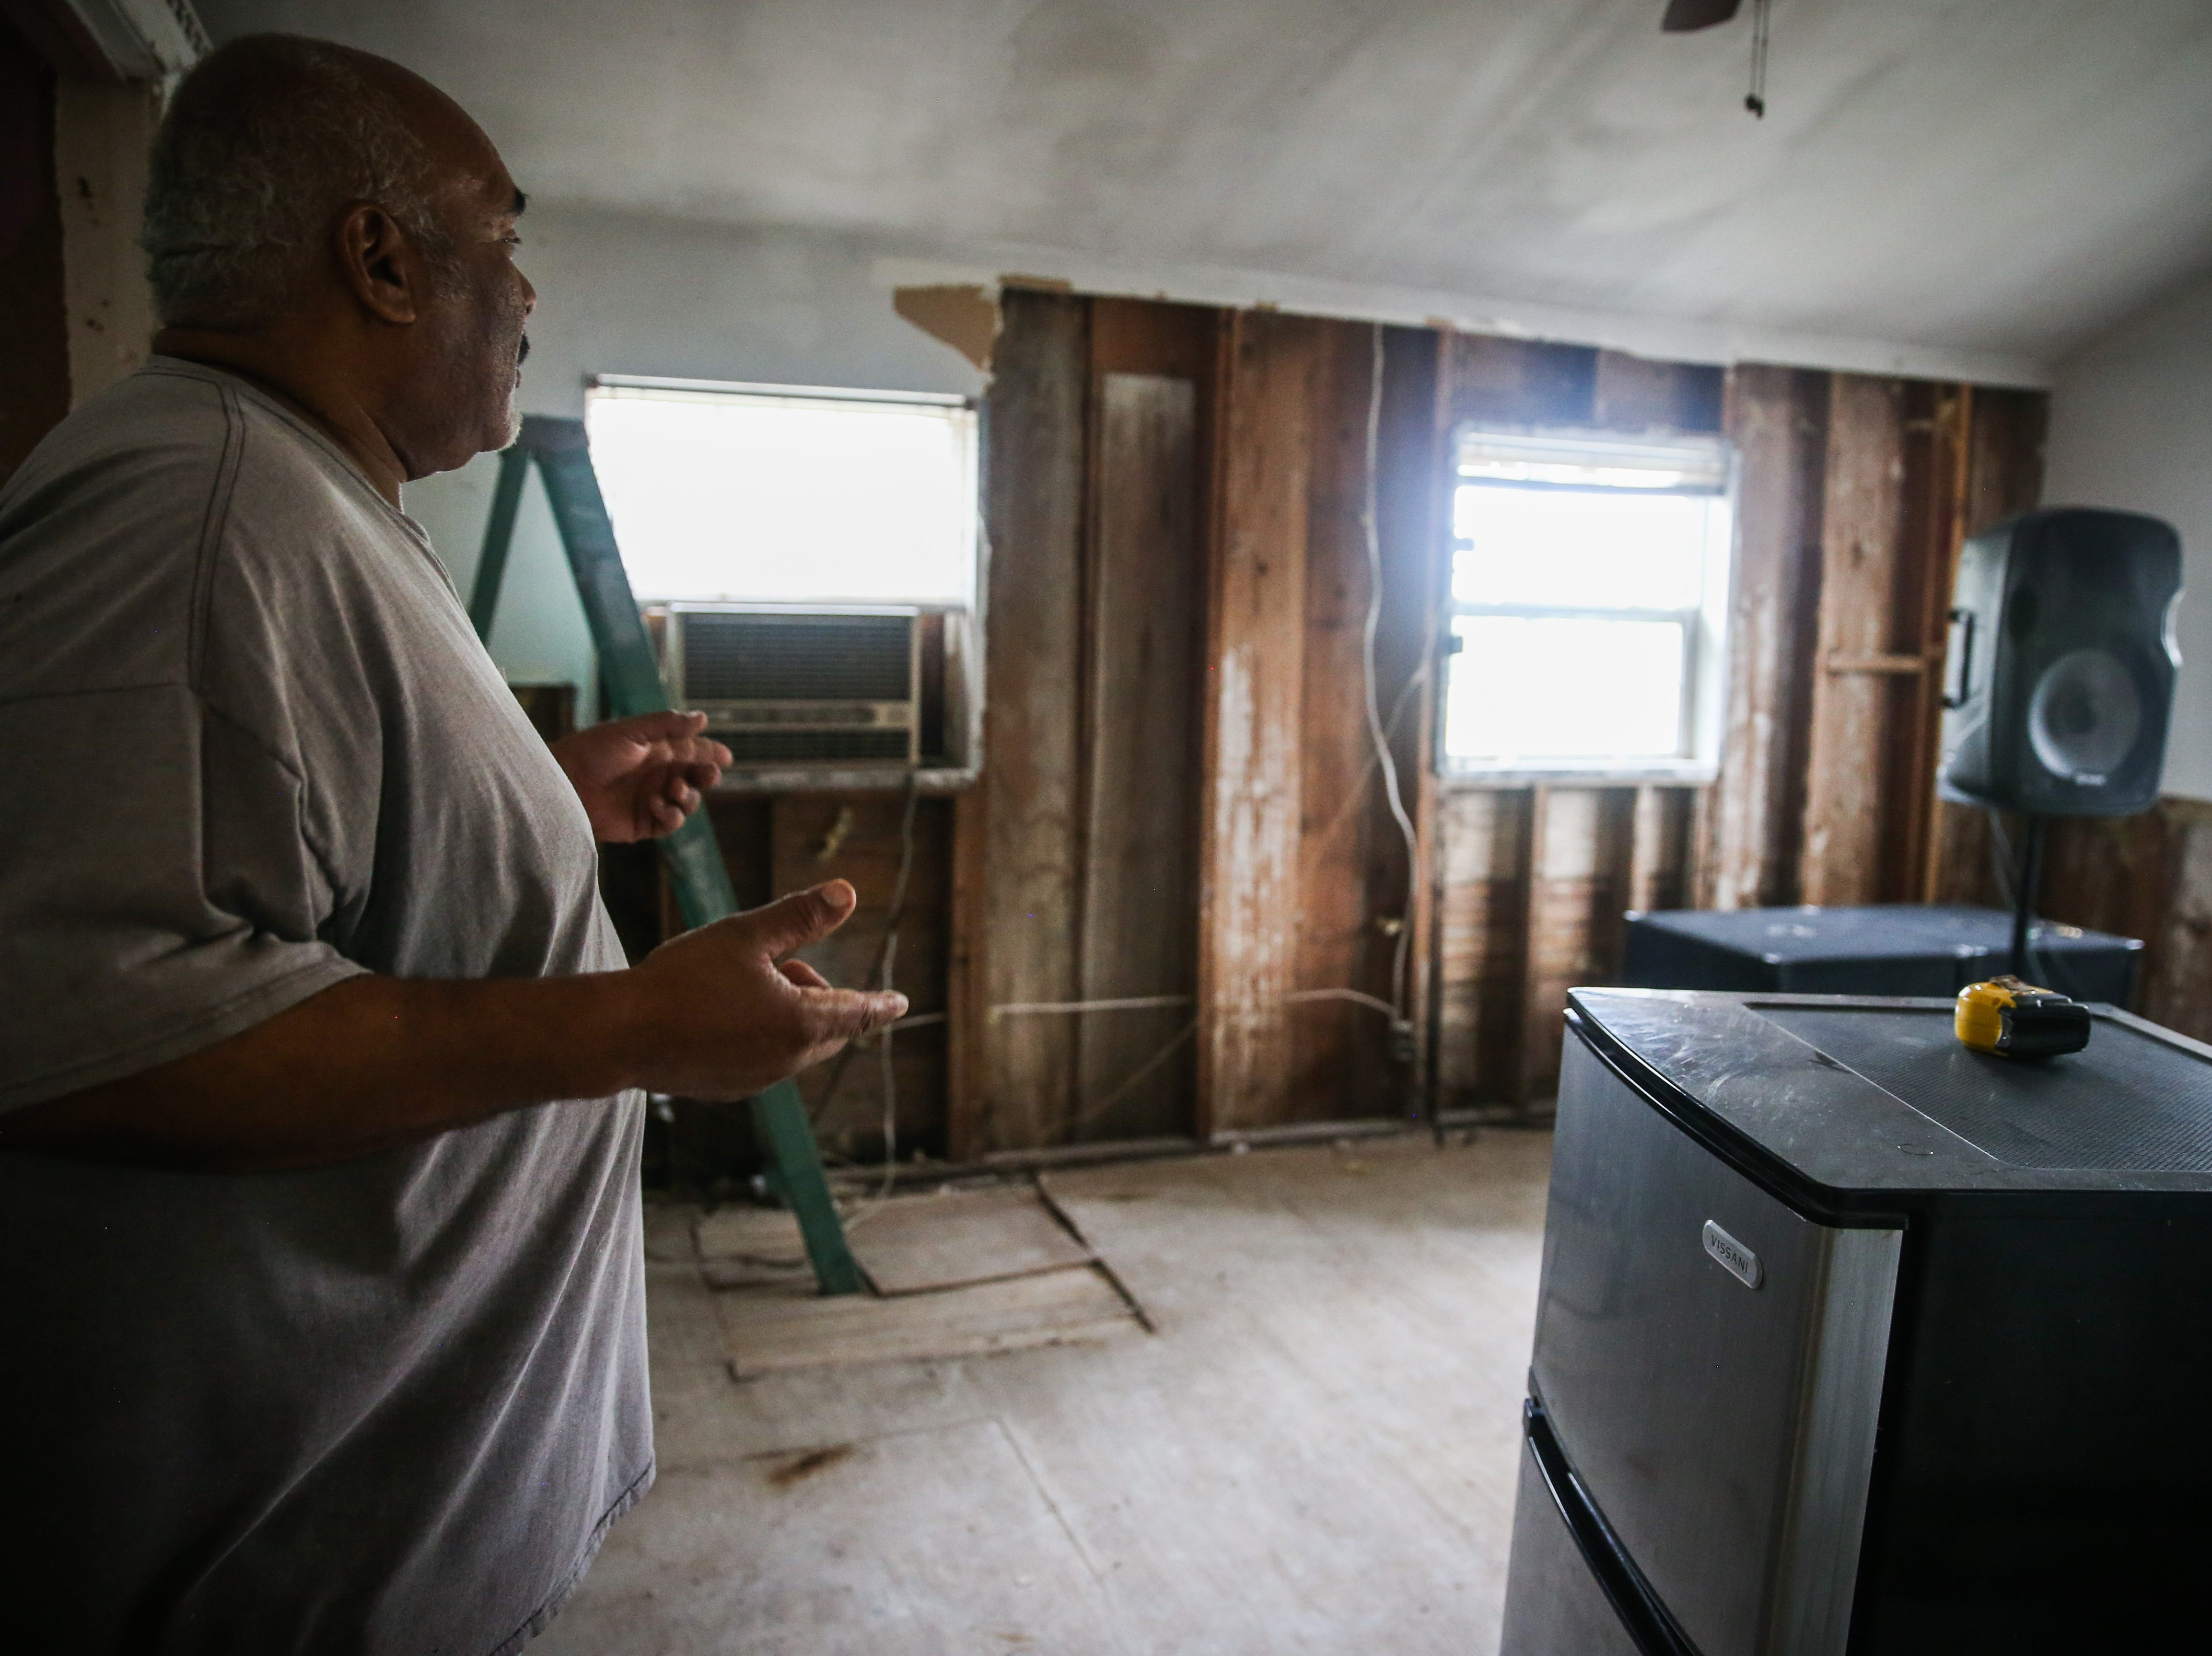 Felip DeHoyos points out flood damage in his home Nov. 8, 2018, after the Sept. 21 flood in Sonora.